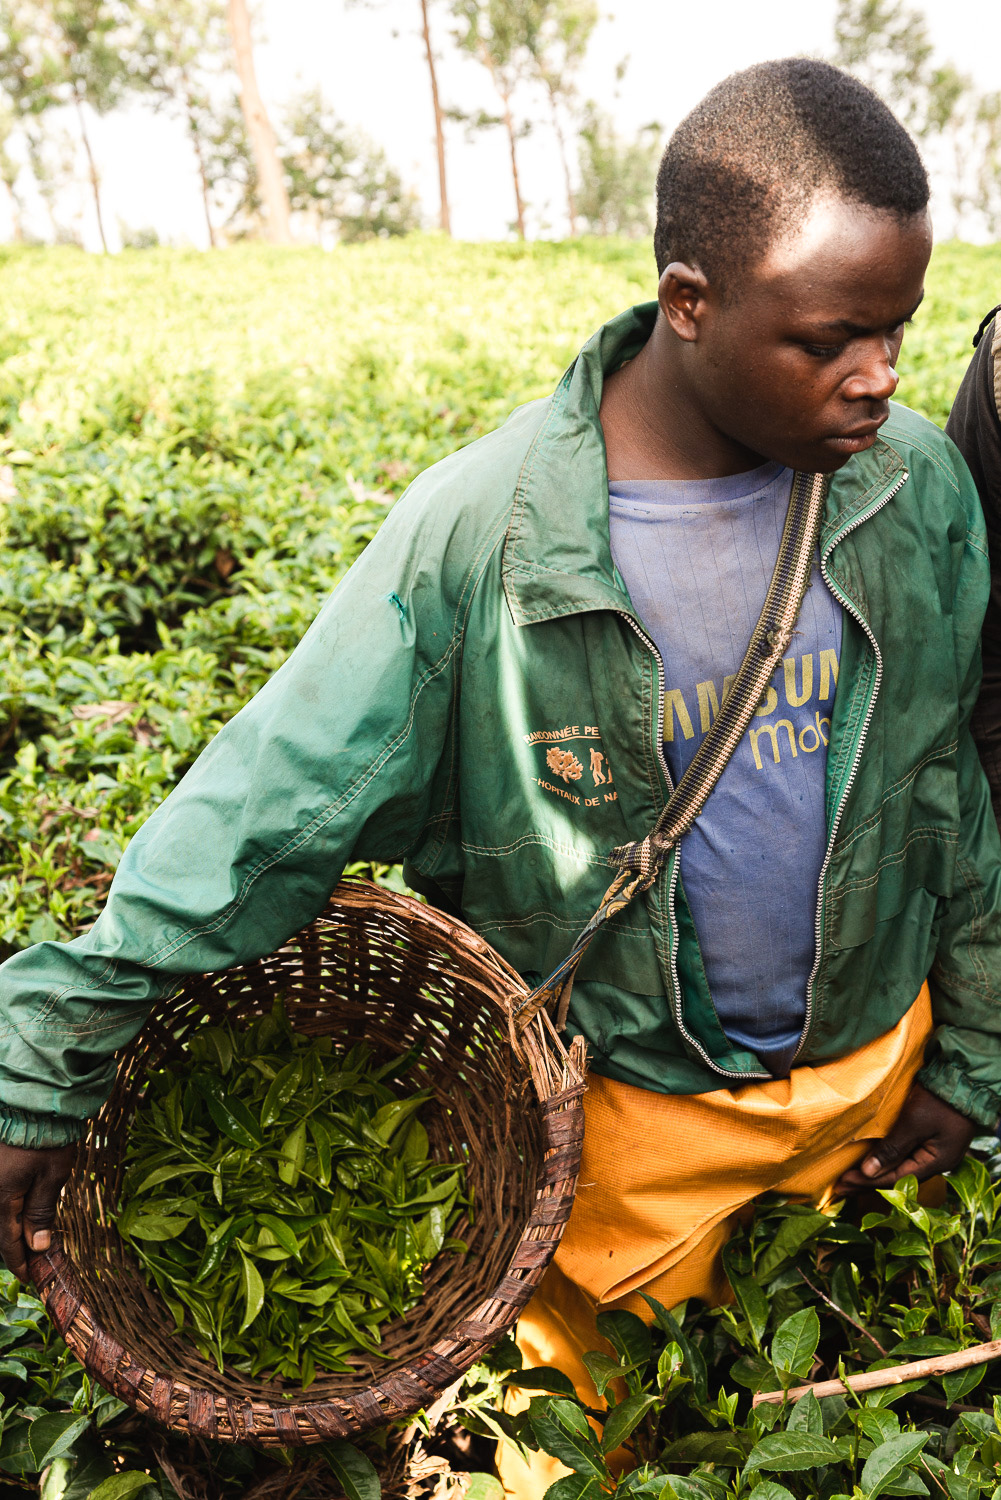 Tea plucking at Sorwathe (Tea Importers Inc.) plantation in Kinihira district, Rwanda